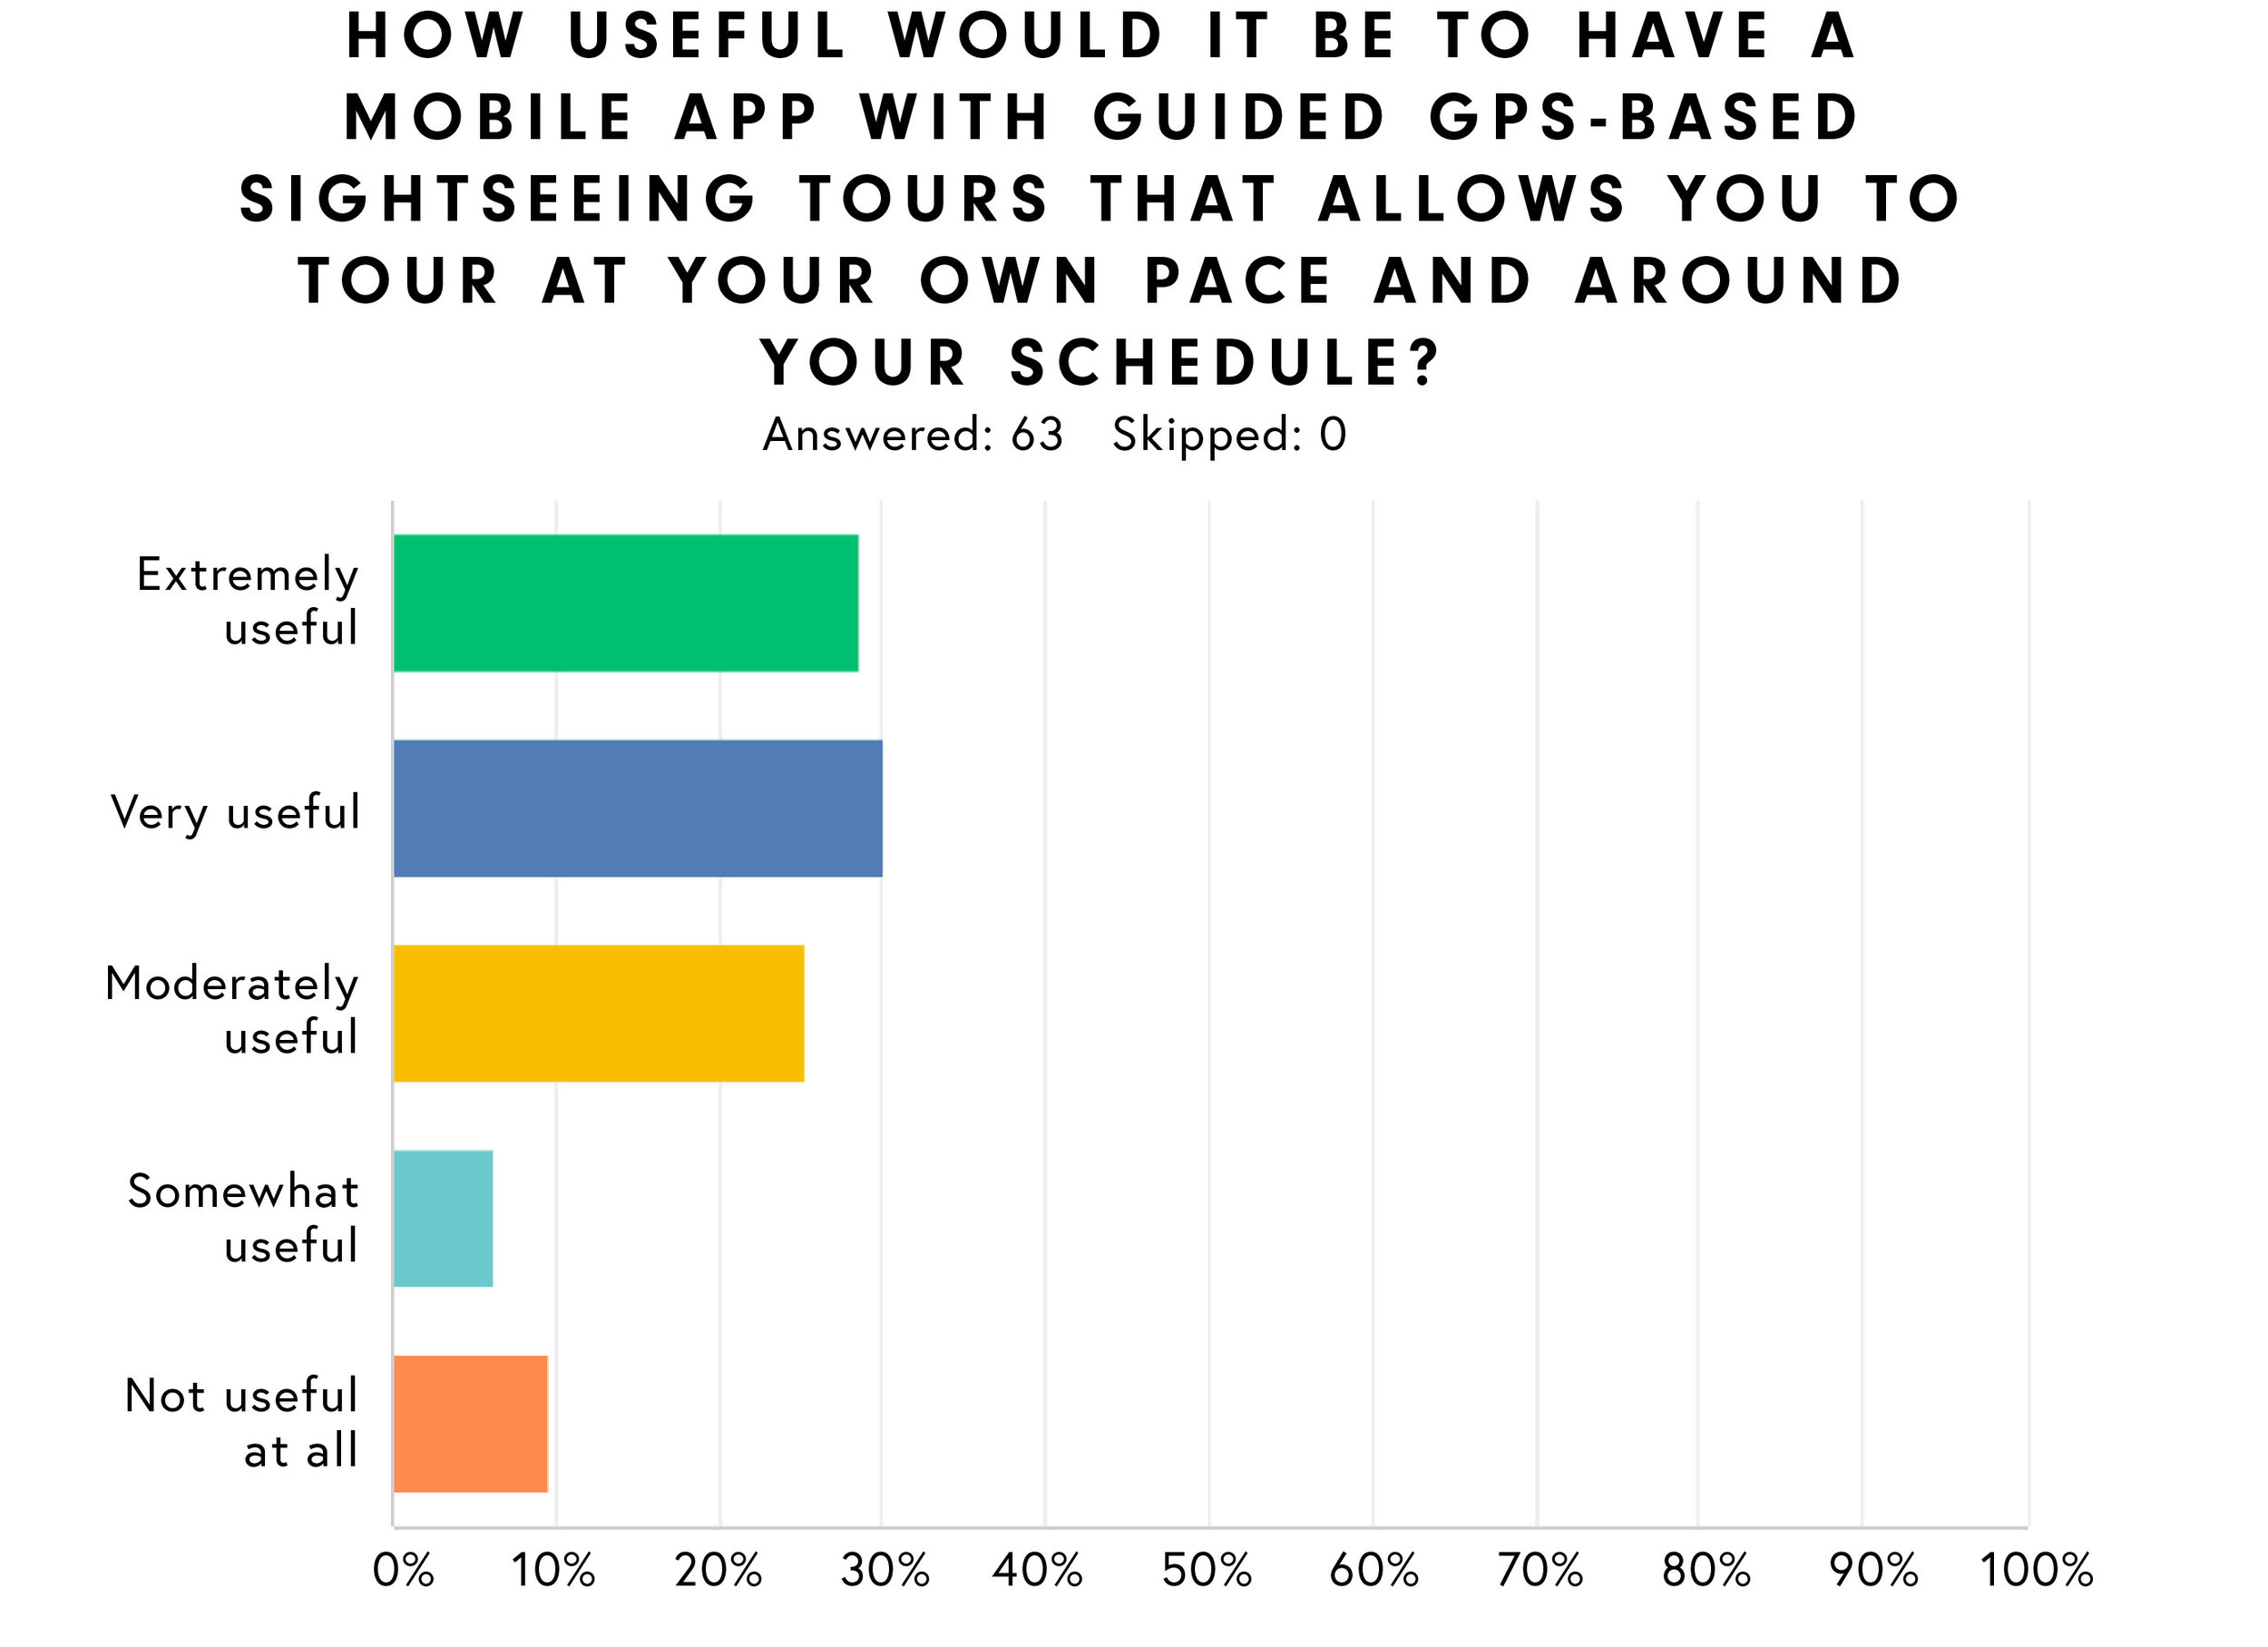 91% SAID MOBILE SIGHTSEEING TOURS USEFUL - Nearly 60% of those surveyed said that a mobile sightseeing app would be extremely or very useful.